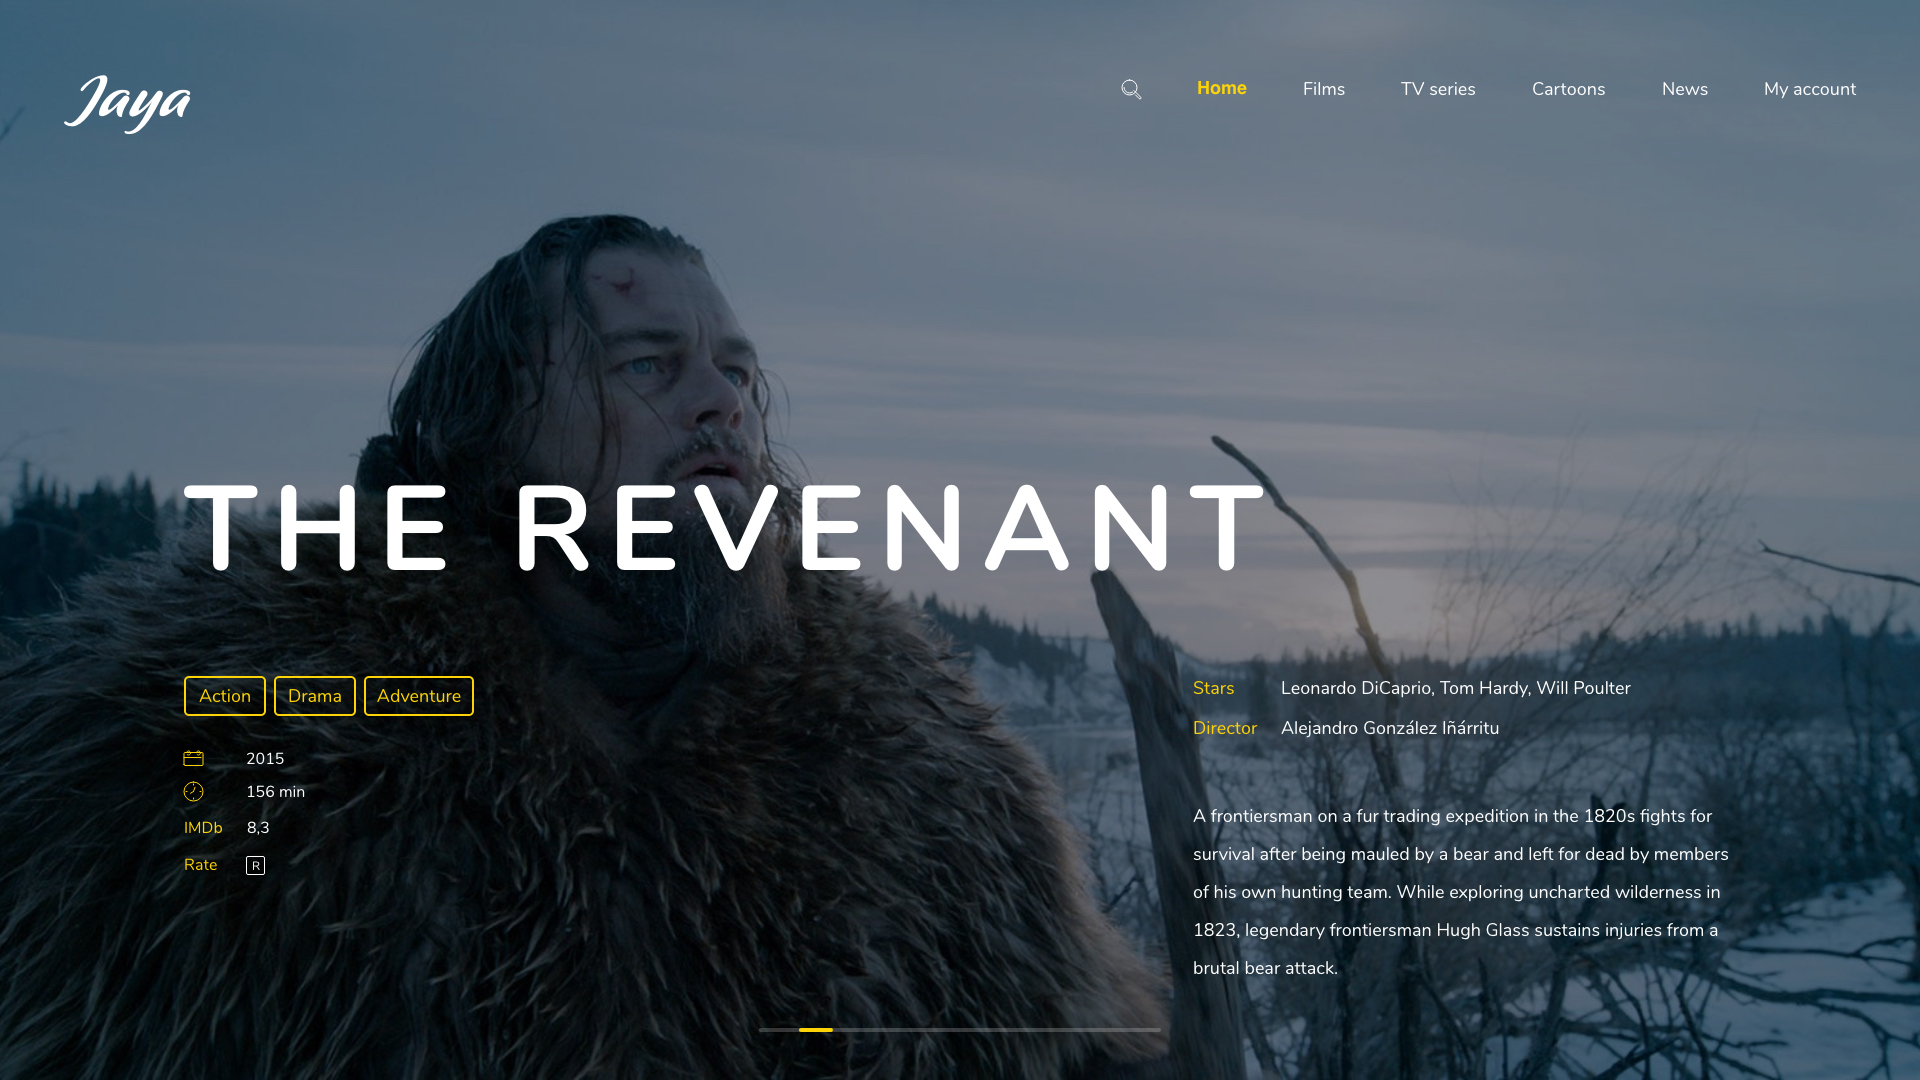 therevenant-home@2x